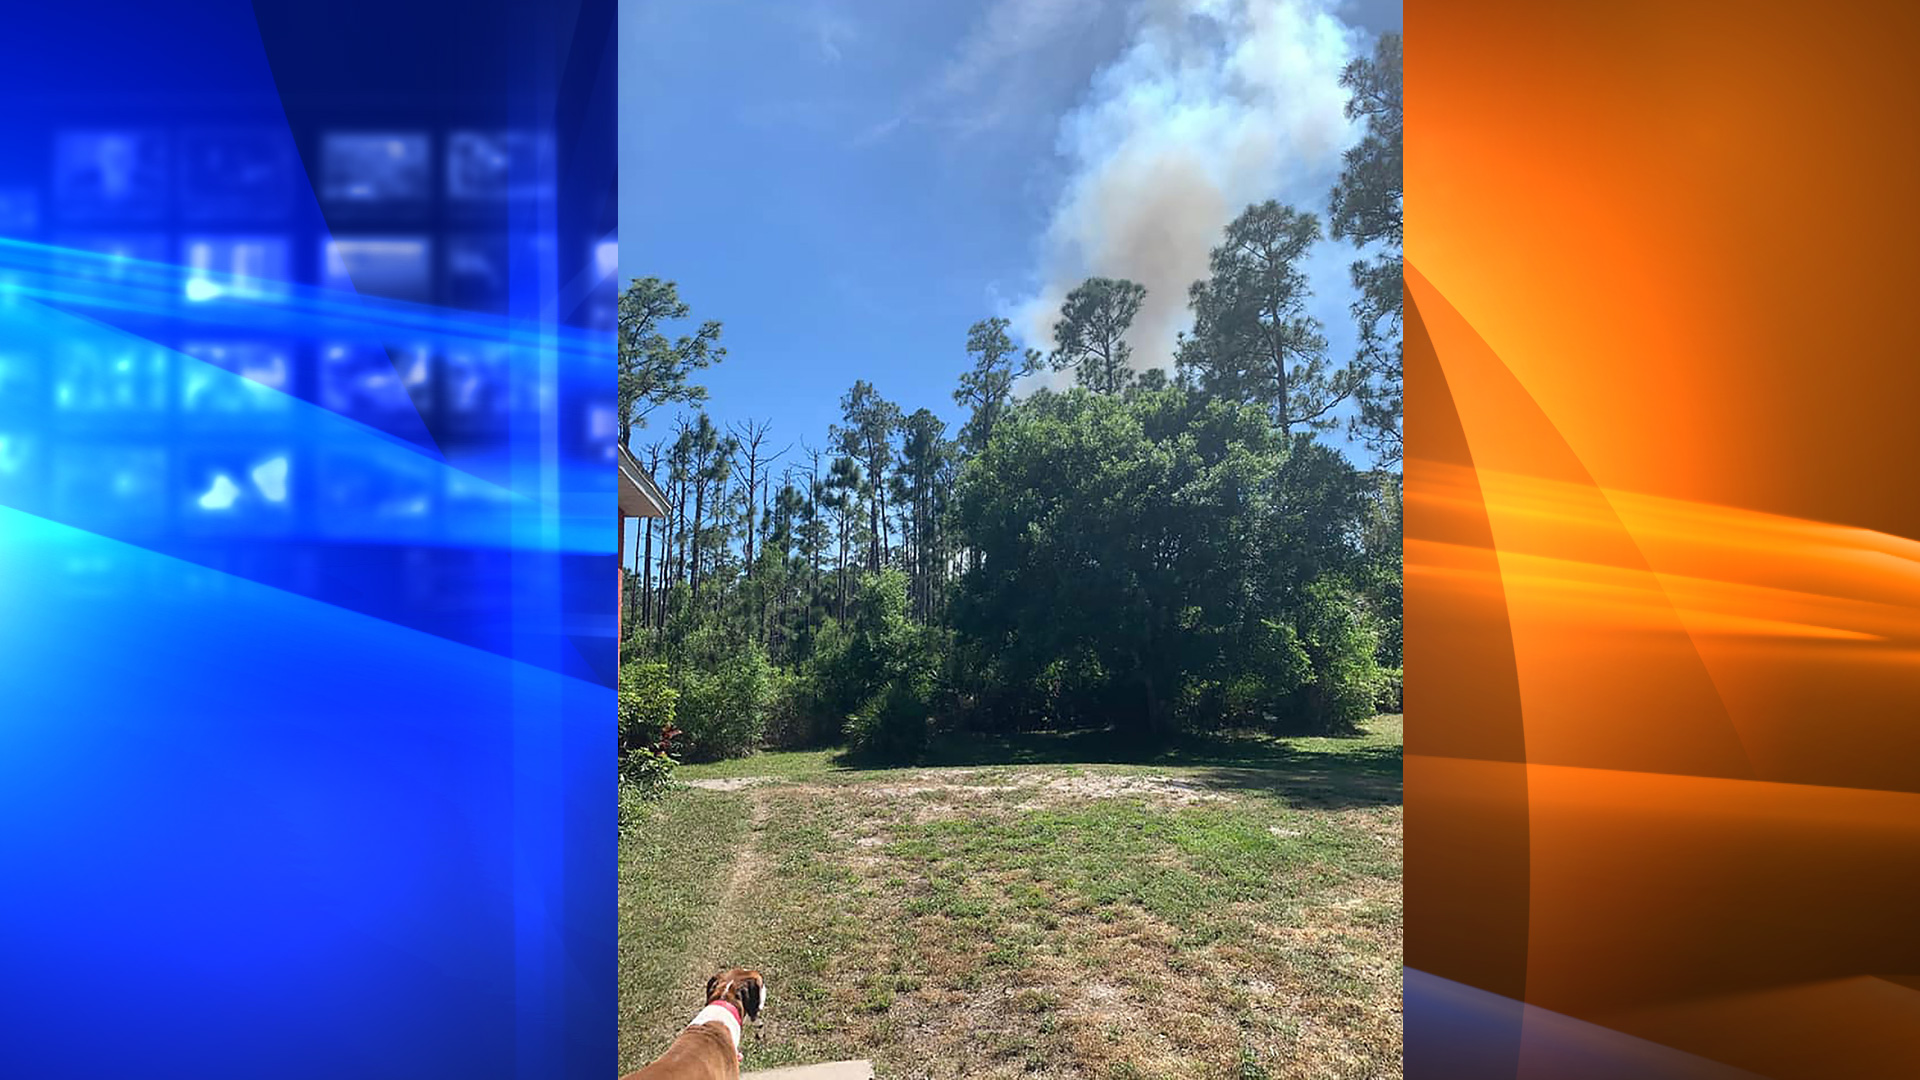 Firefighters were called to a home in Brevard County, Florida, after reports that a blaze was possibly ignited by fireworks, fire officials said. (Brevard County Fire Rescue)